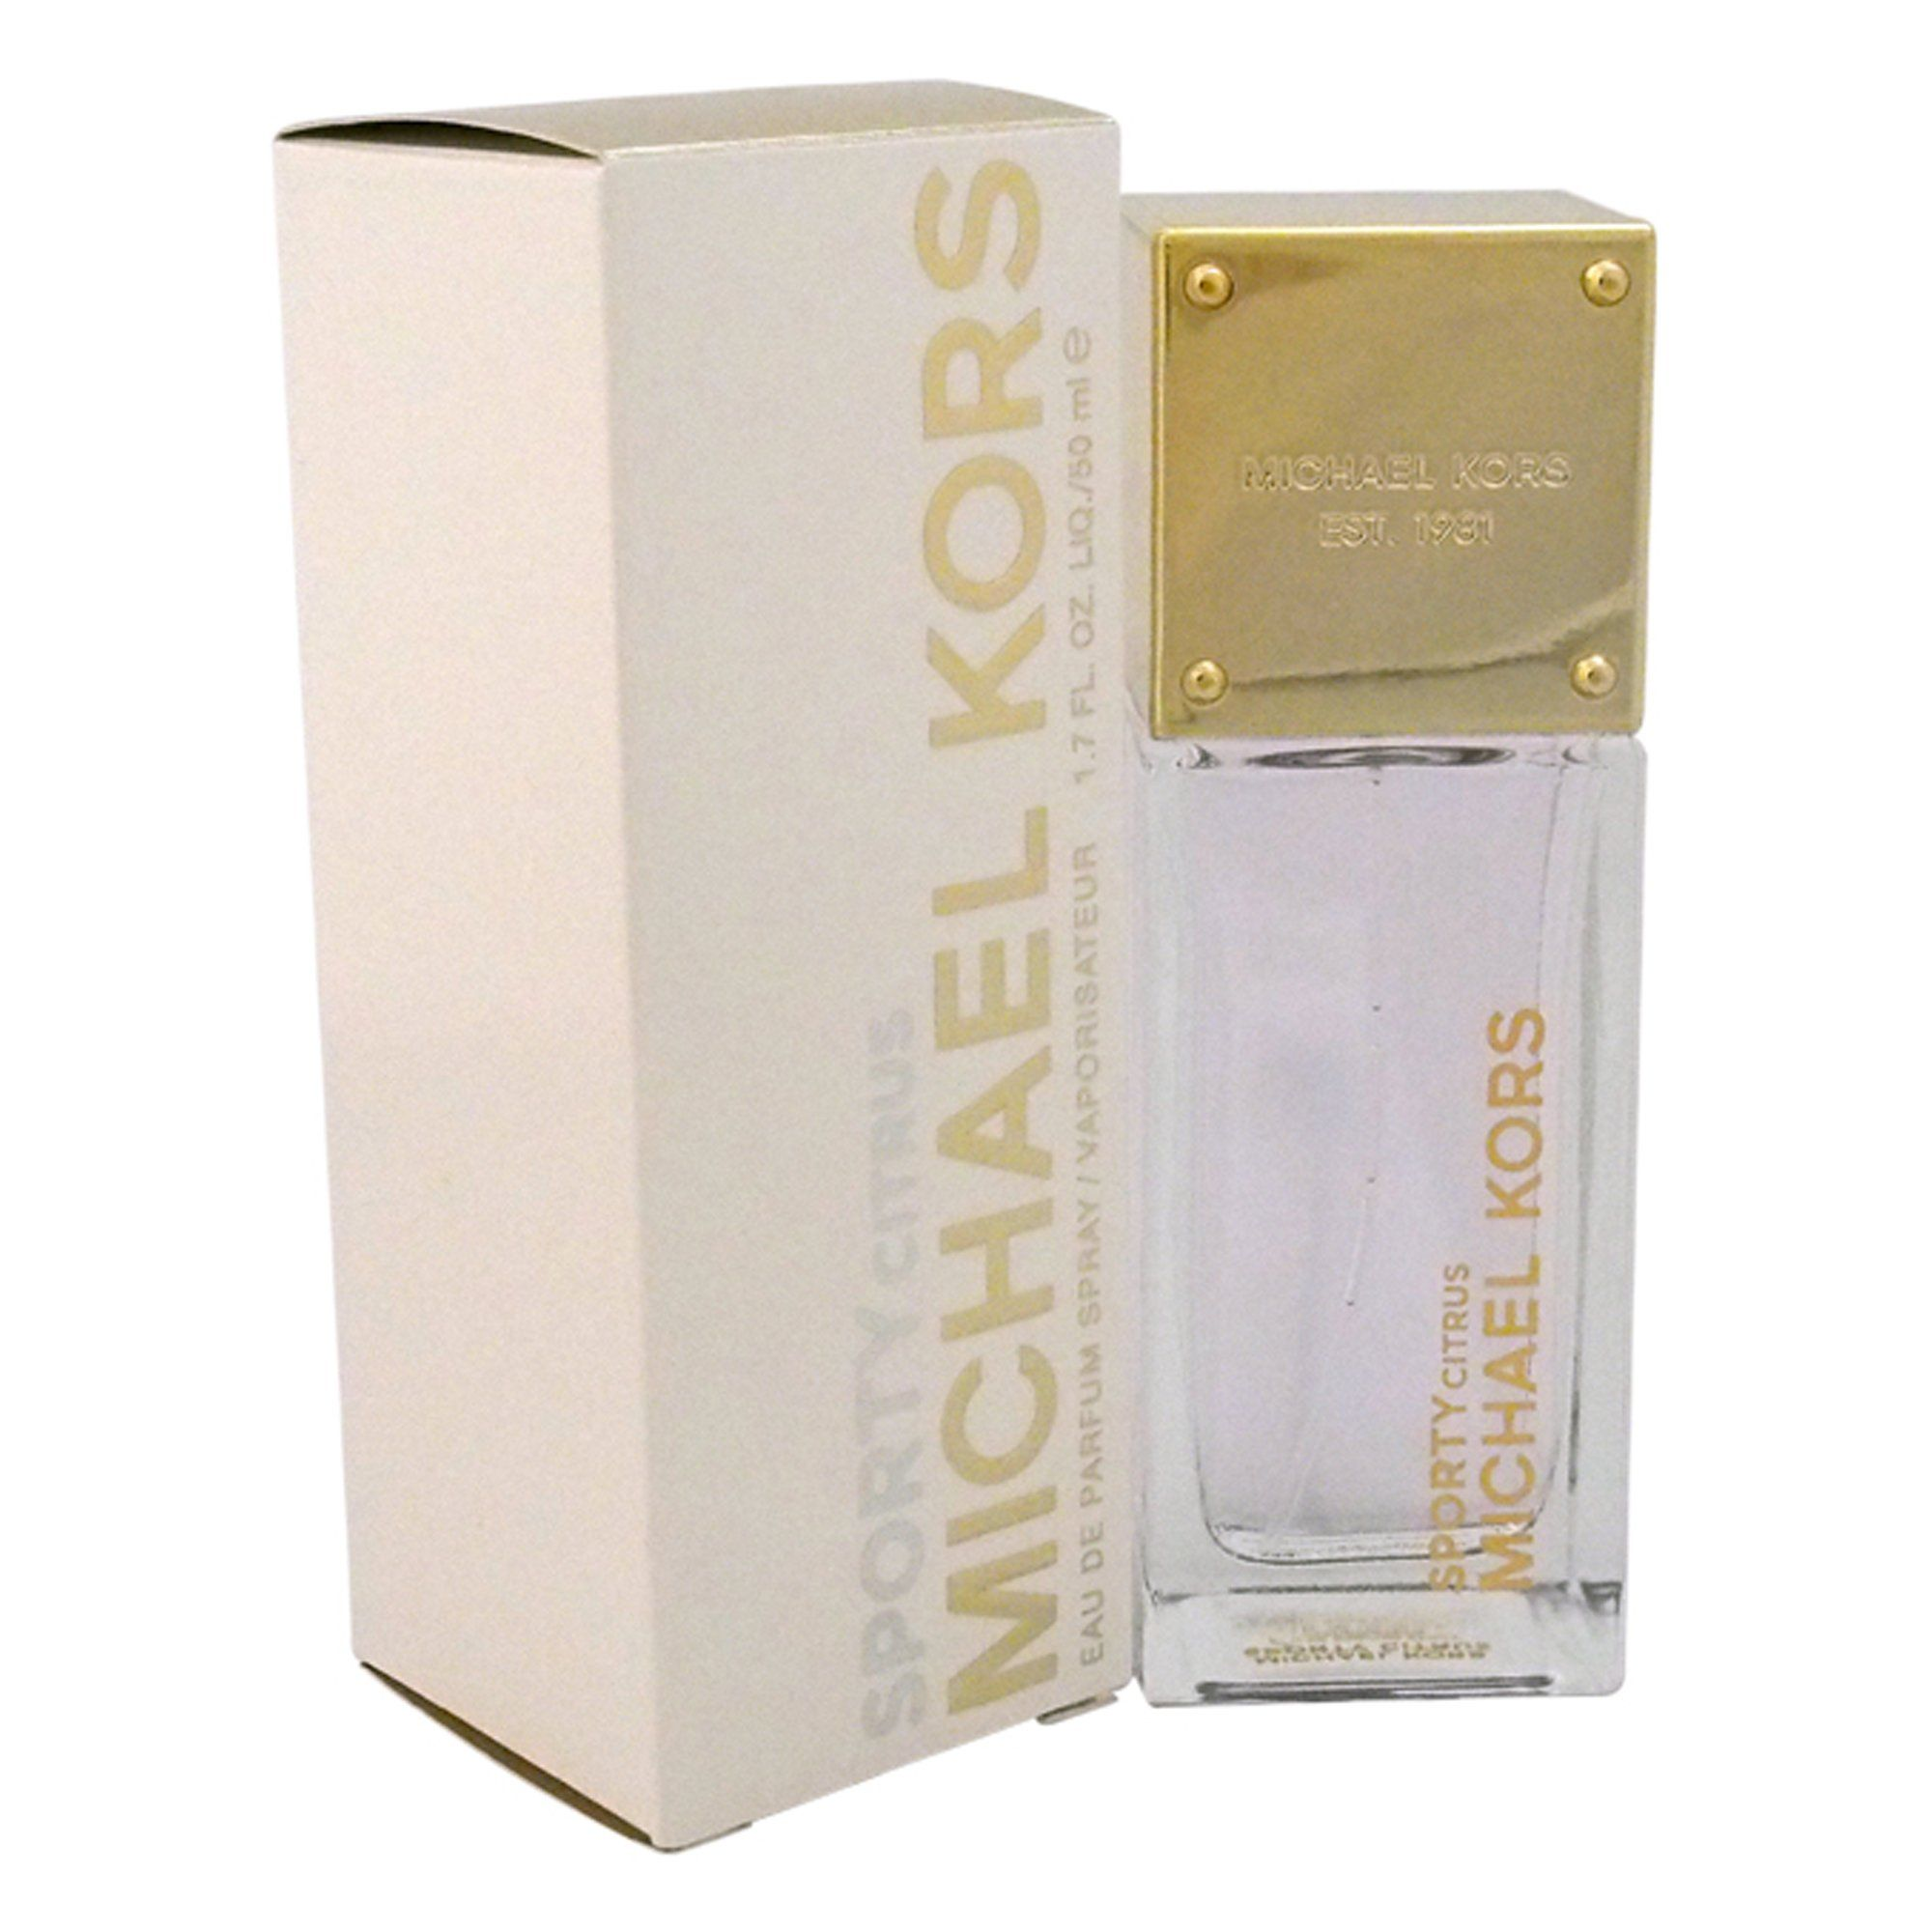 Sporty Citrus by Michael Kors 50ml EDP